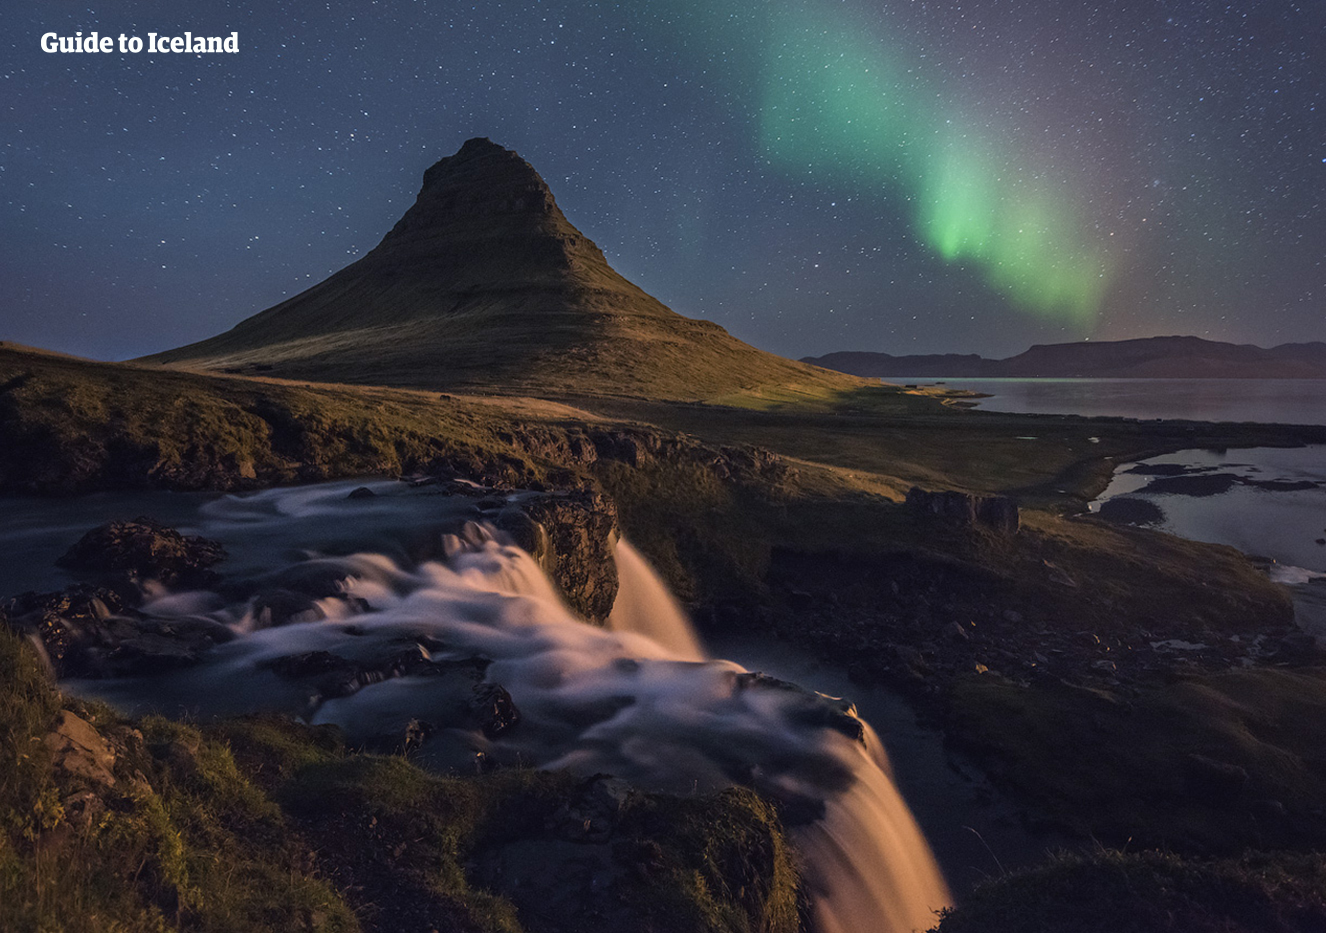 Kirkjufell is a beautiful mountain in west Iceland, shaped like a pyramid or arrow head.